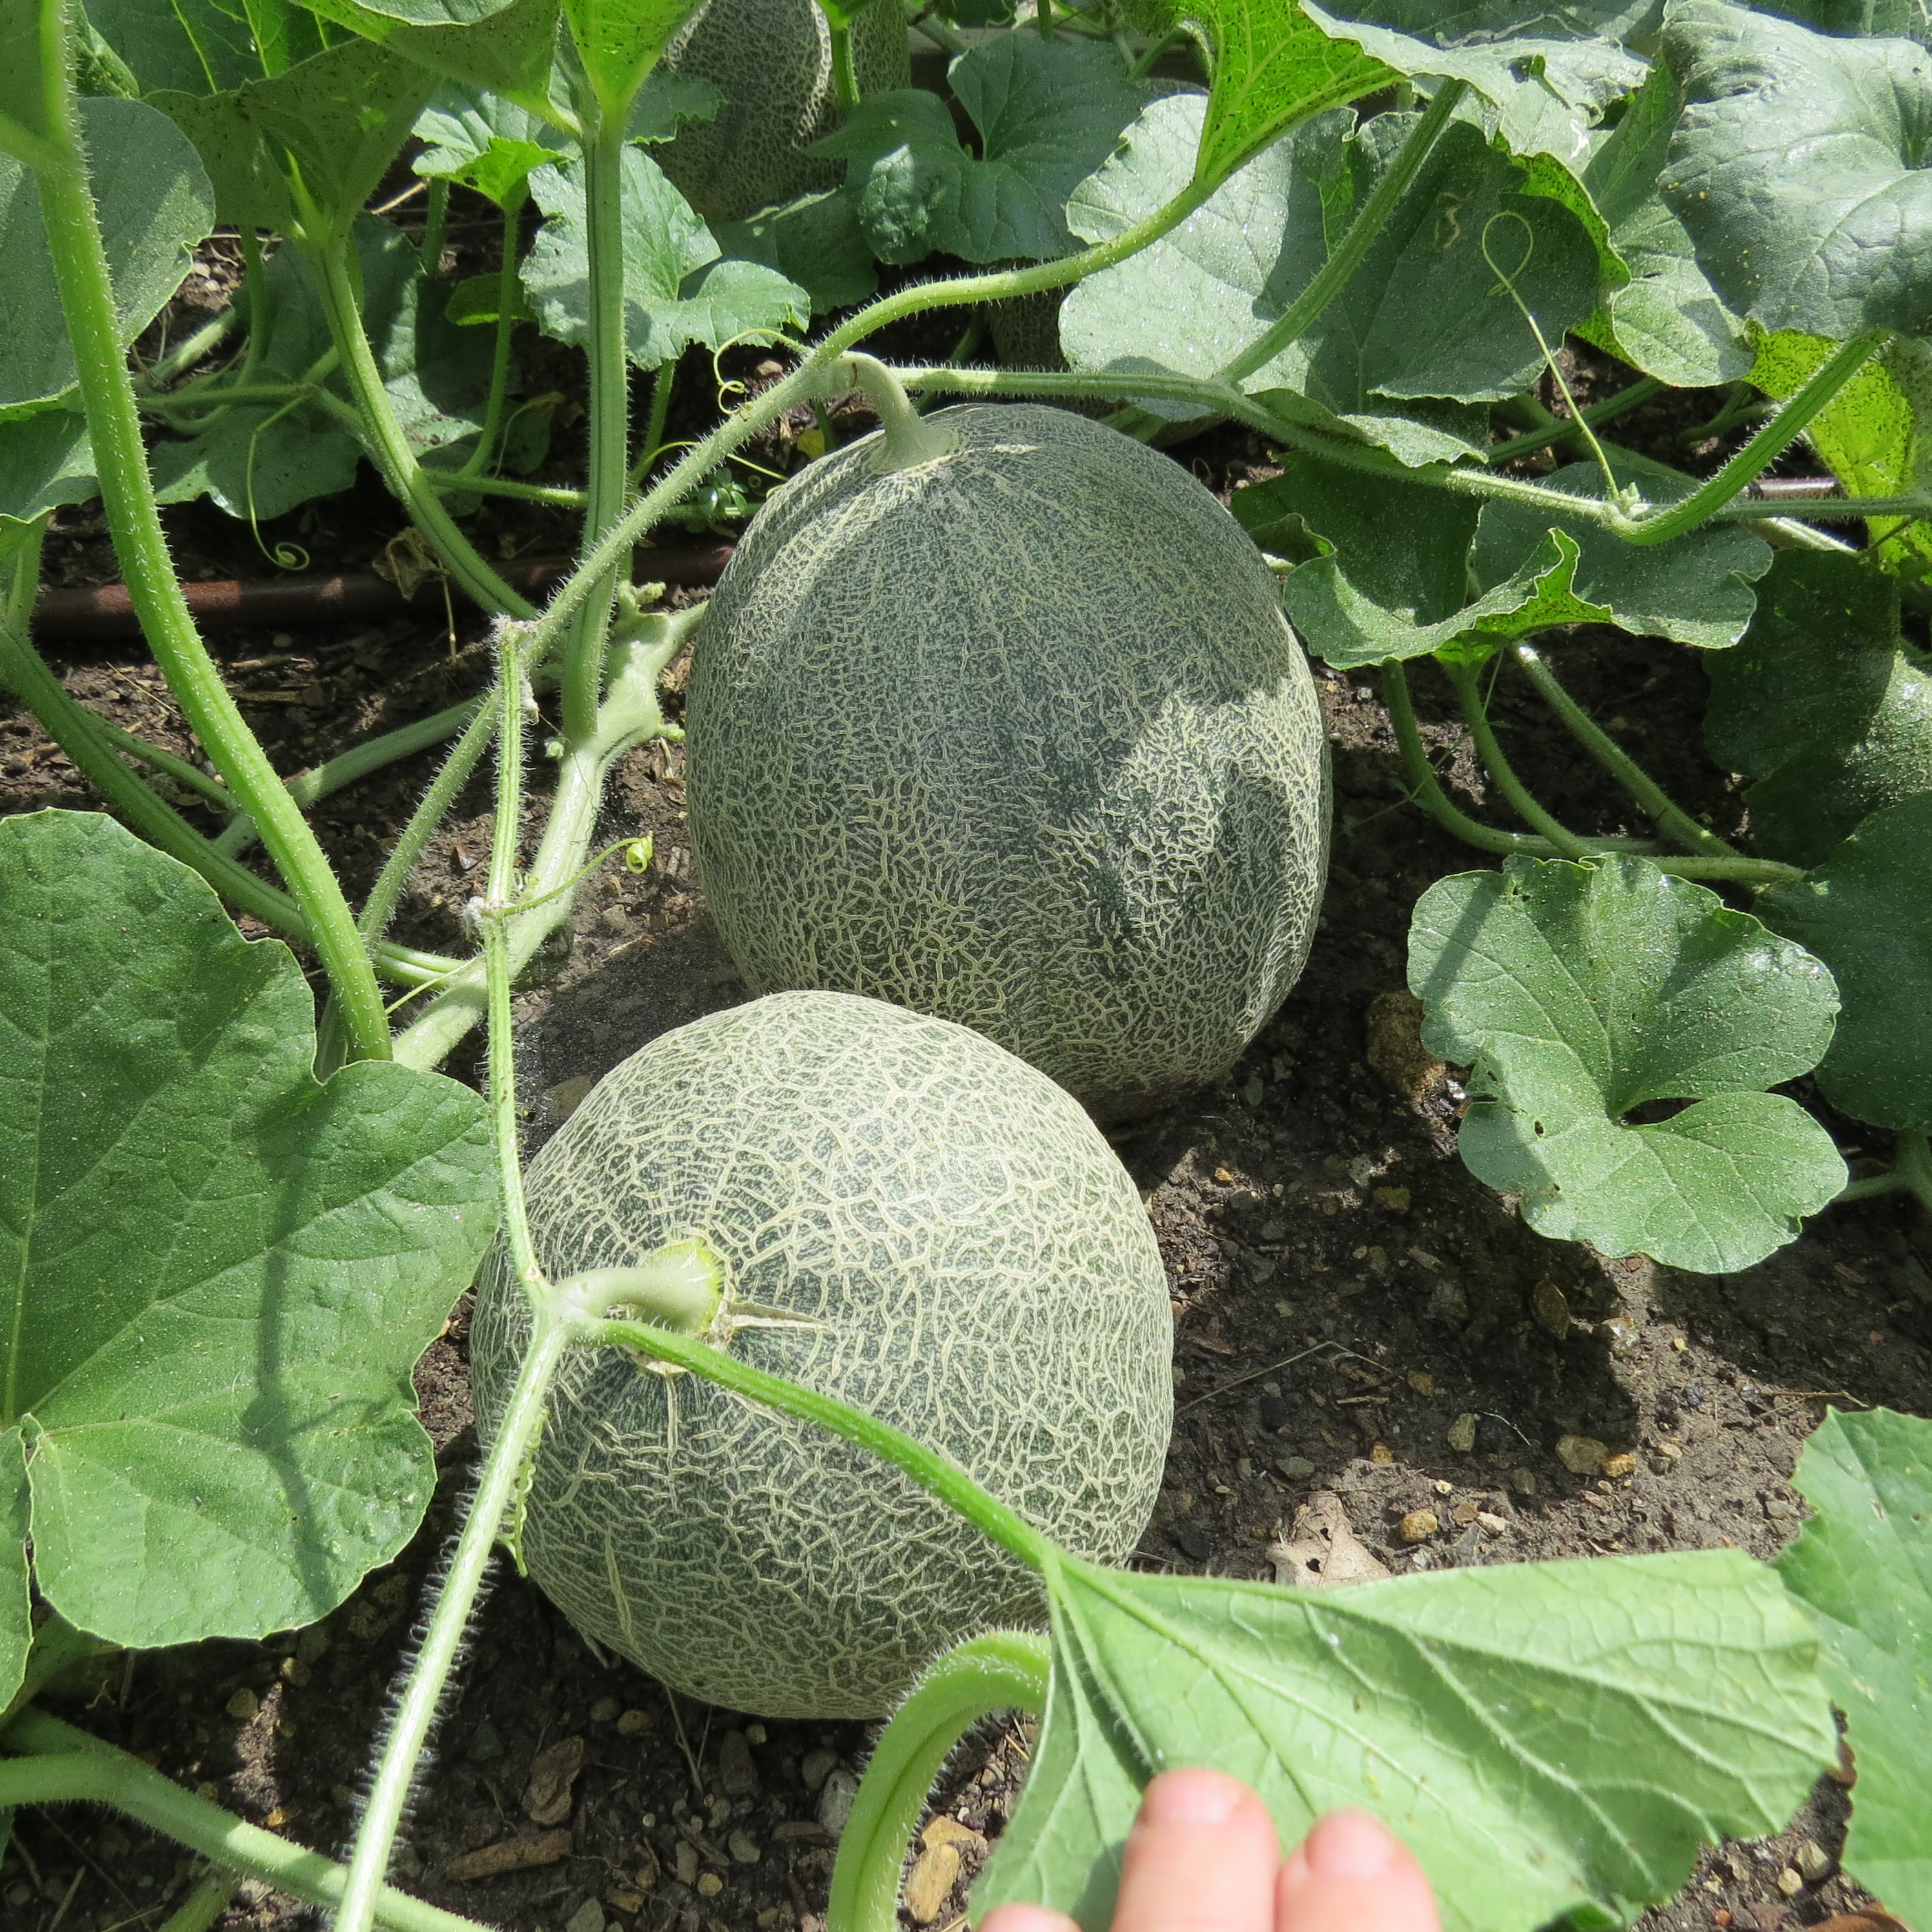 Growing Cantaloupe In Texas Dallas Garden Buzz Remember you can post in the forum if you have any questions. growing cantaloupe in texas dallas